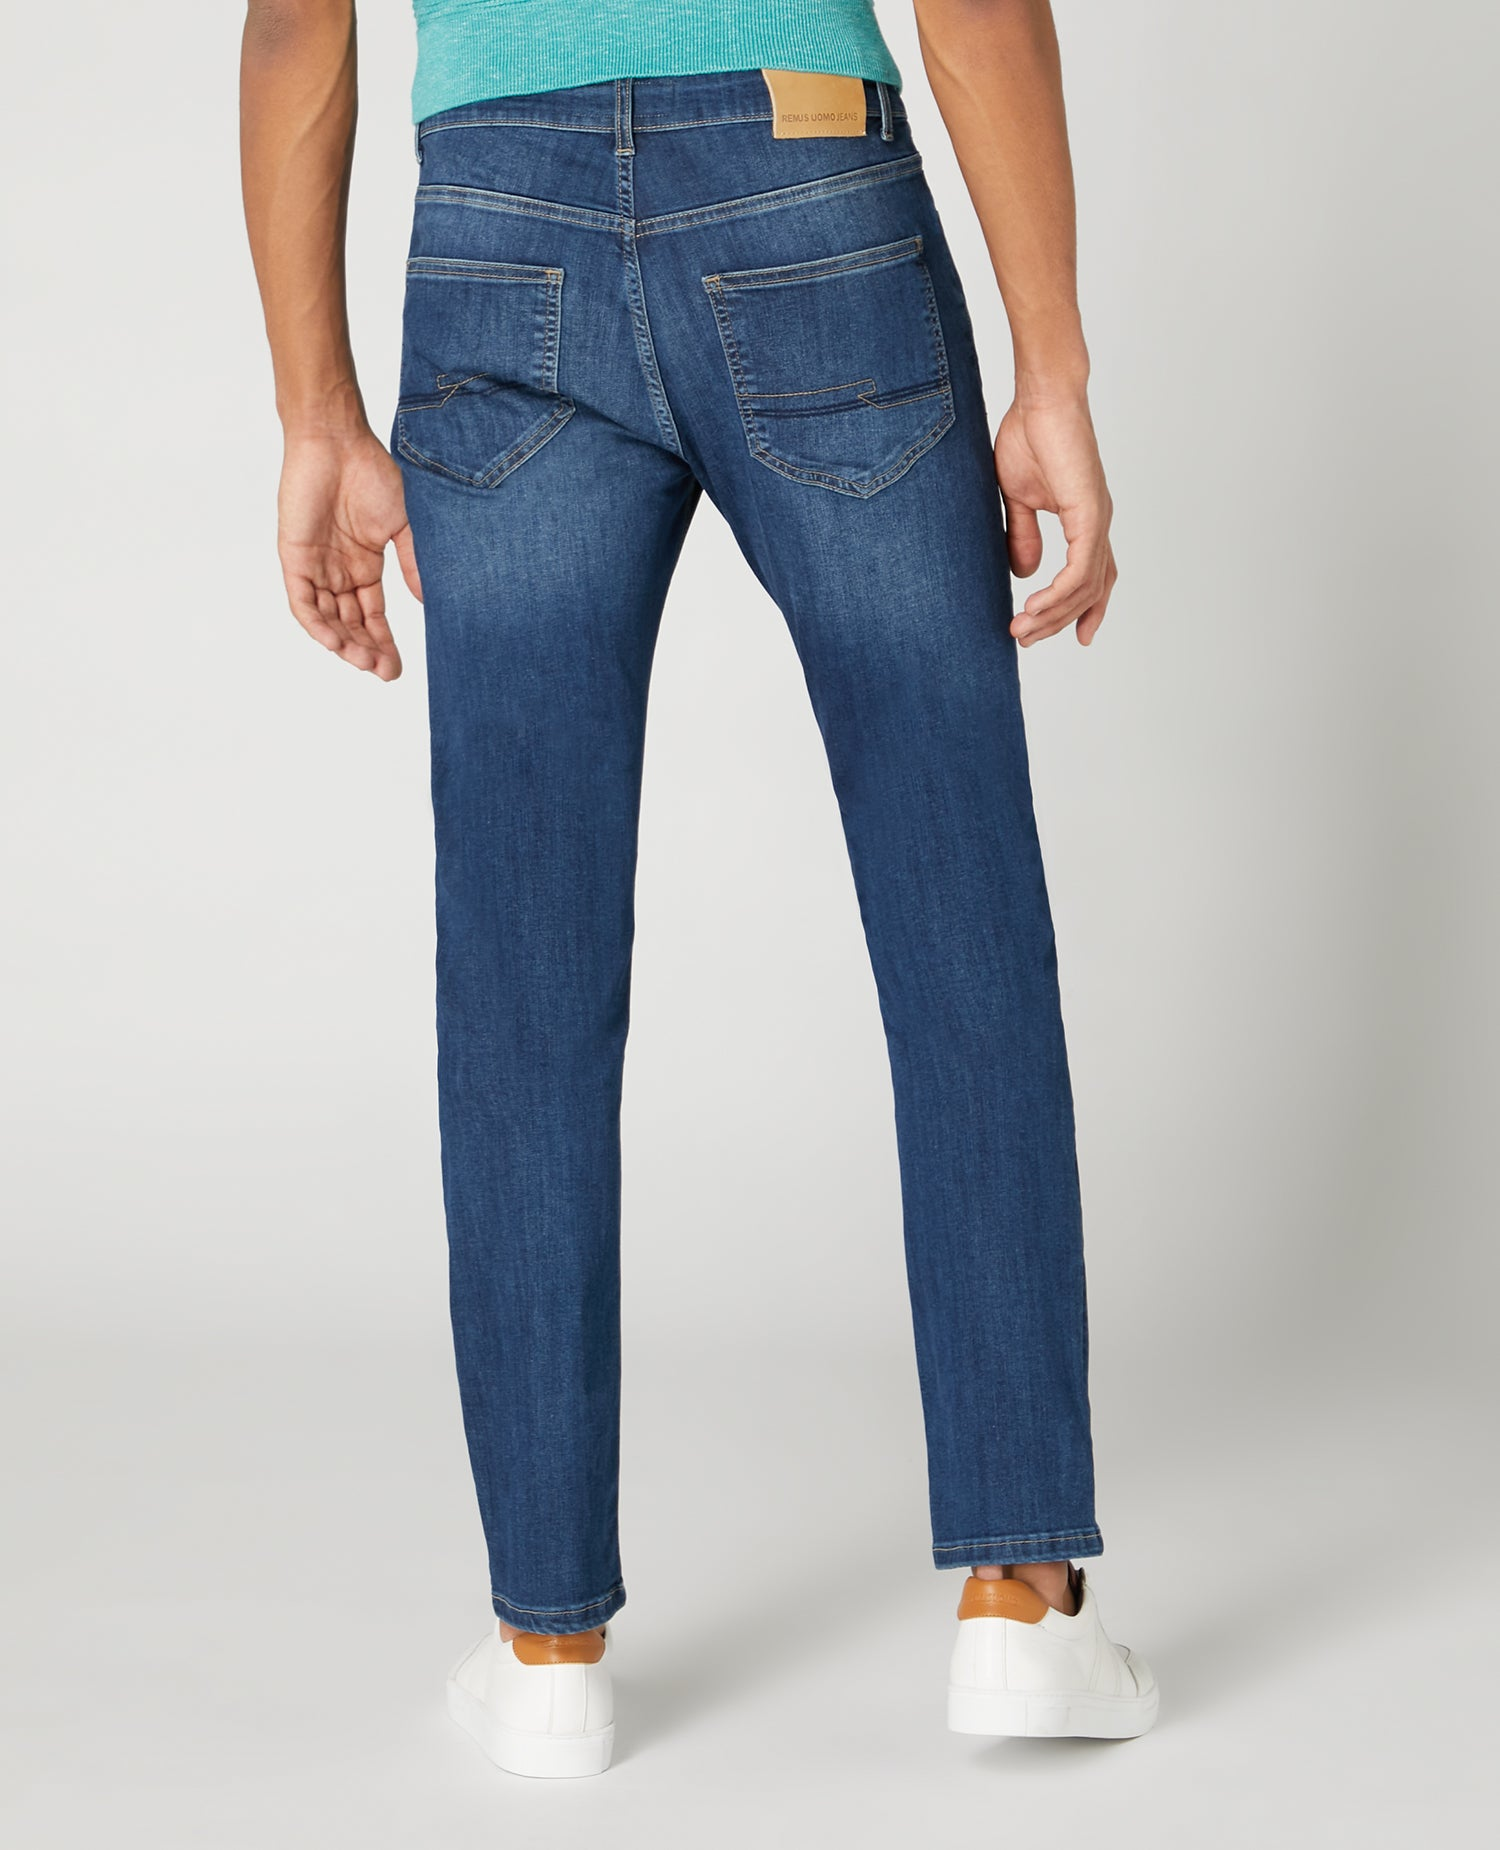 Remus Uomo Power Stretch Jean